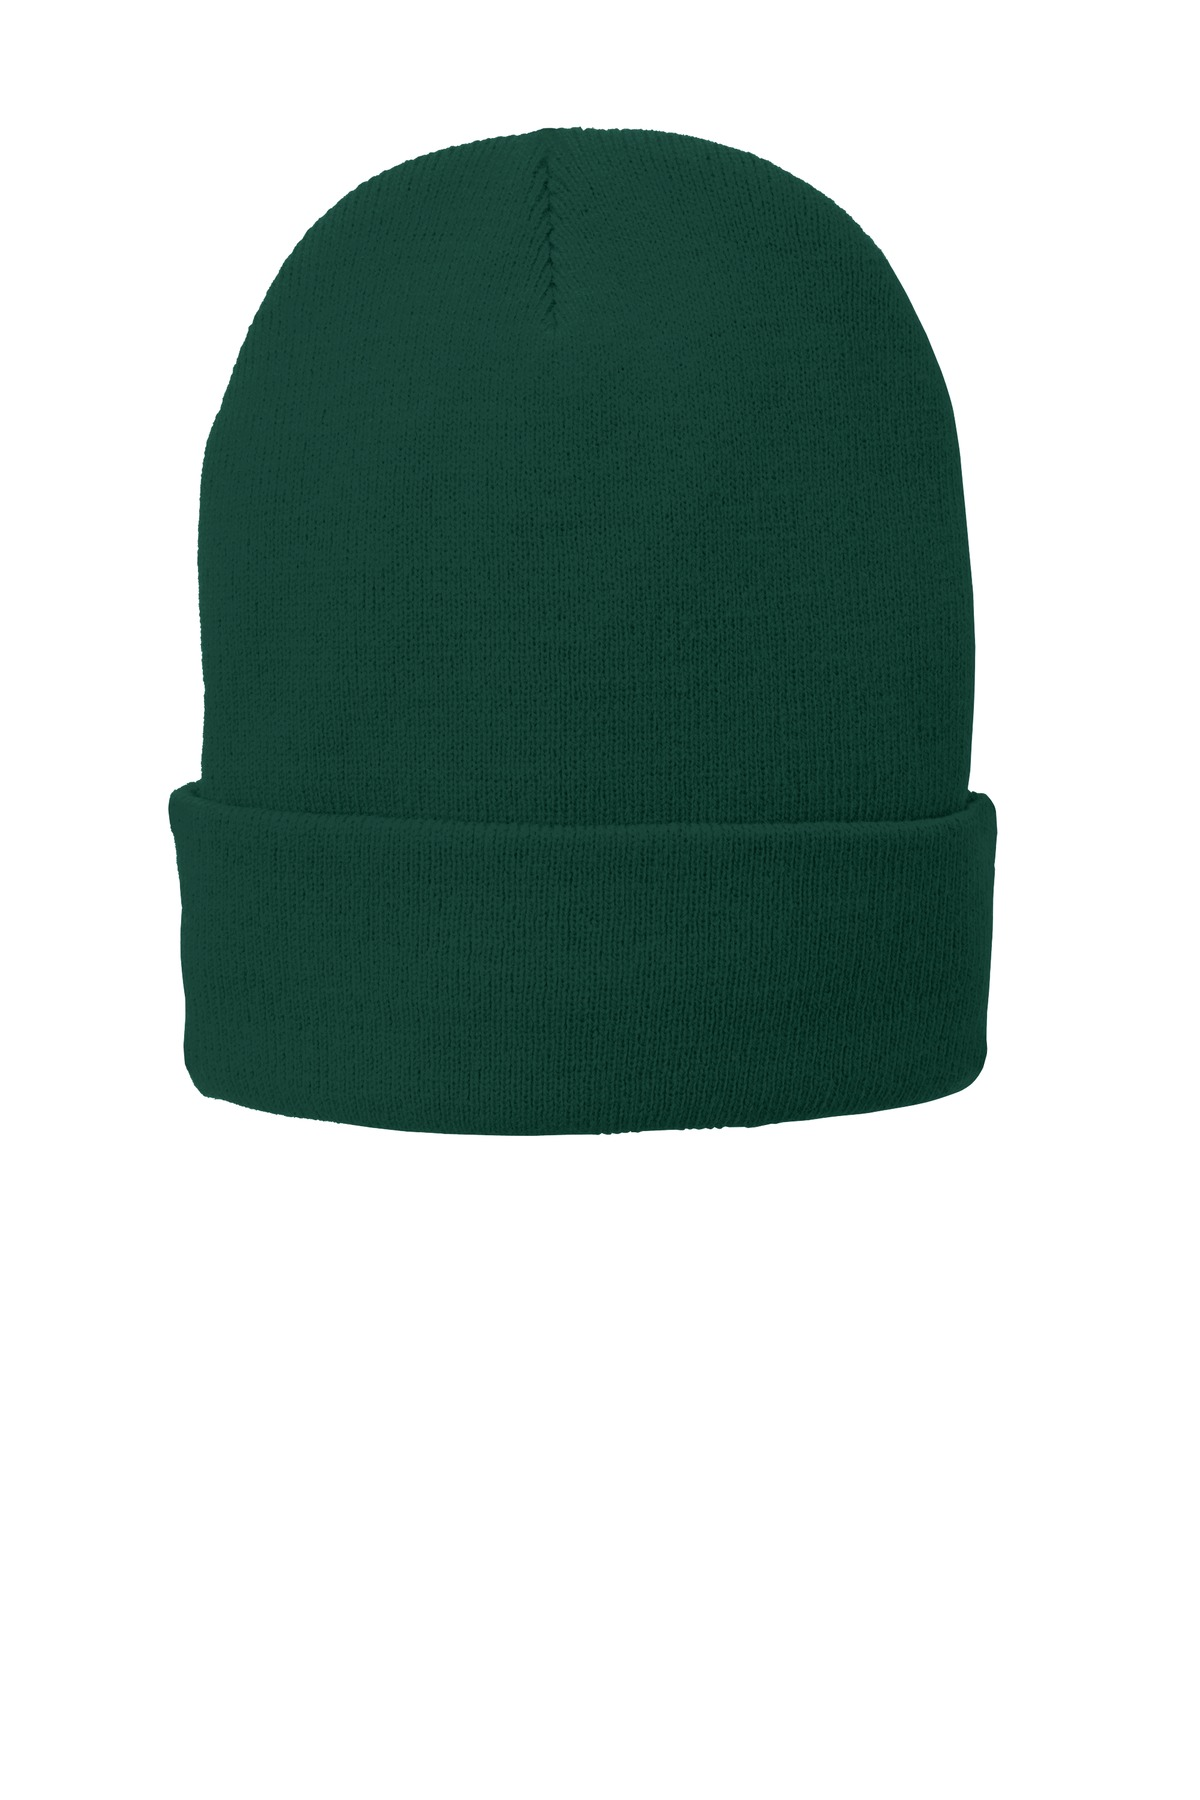 Port & Company ®  Fleece-Lined Knit Cap. CP90L - Athletic Green